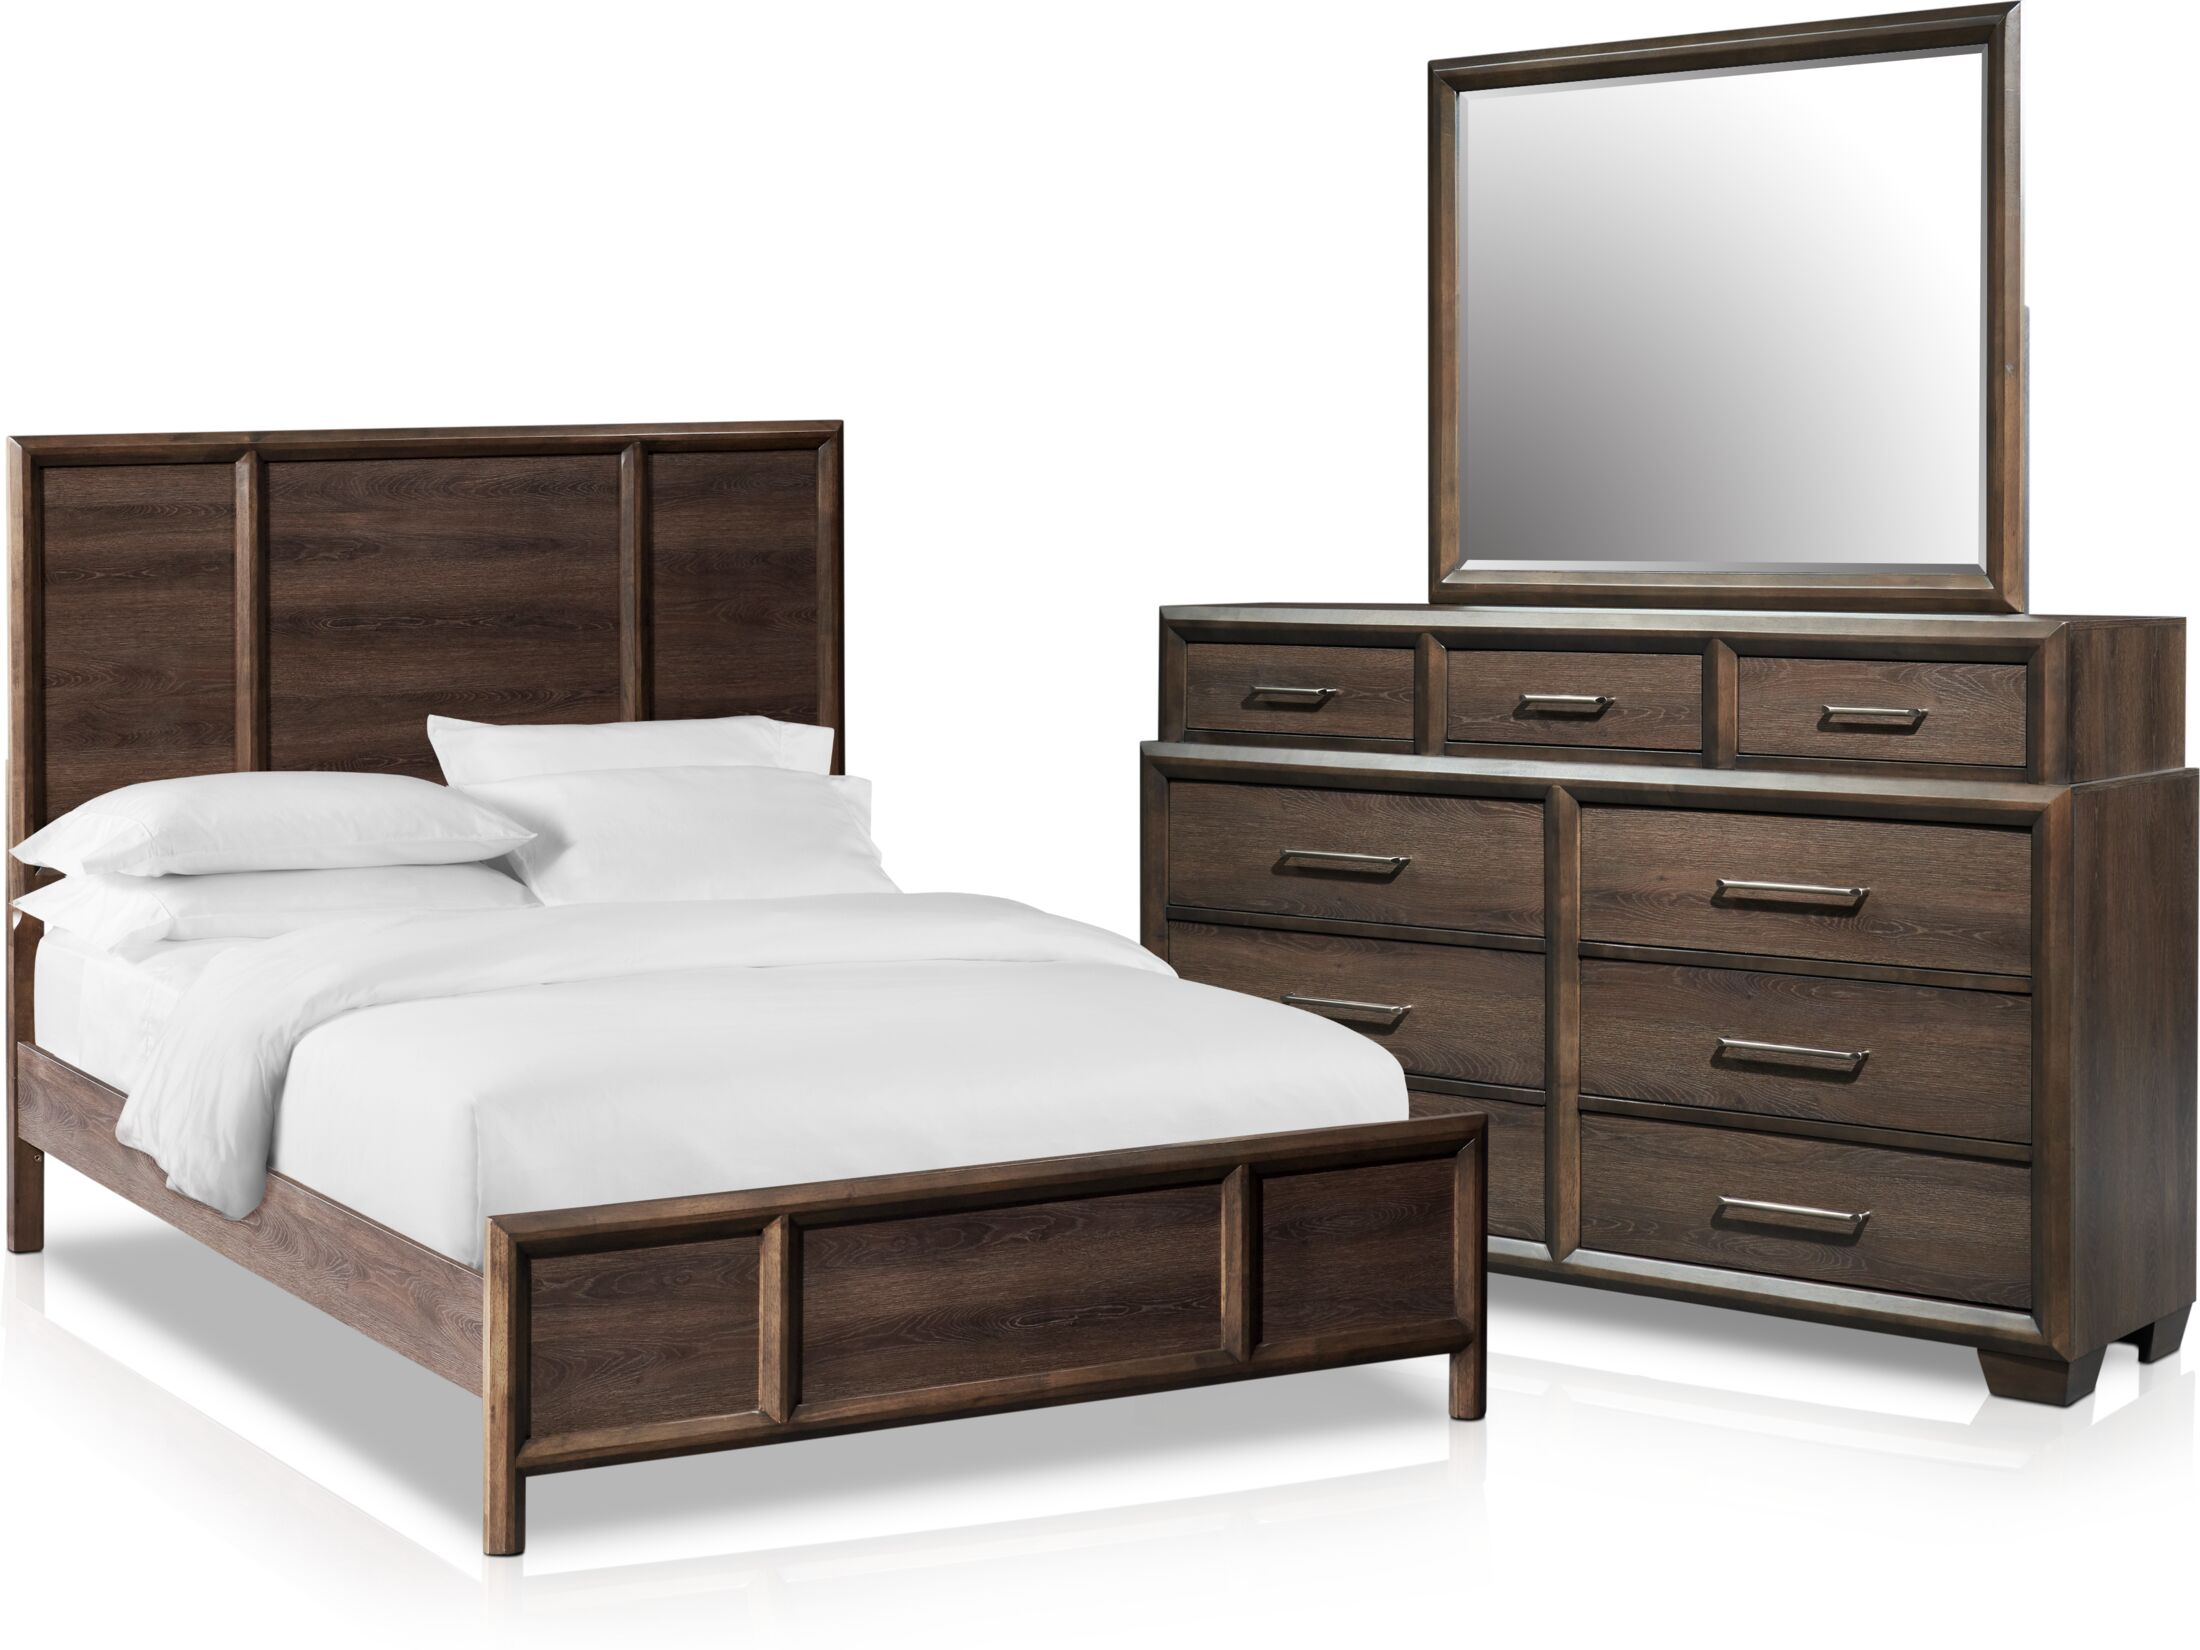 Bedroom Furniture - Dakota 5-Piece Bedroom Set with Dresser and Mirror